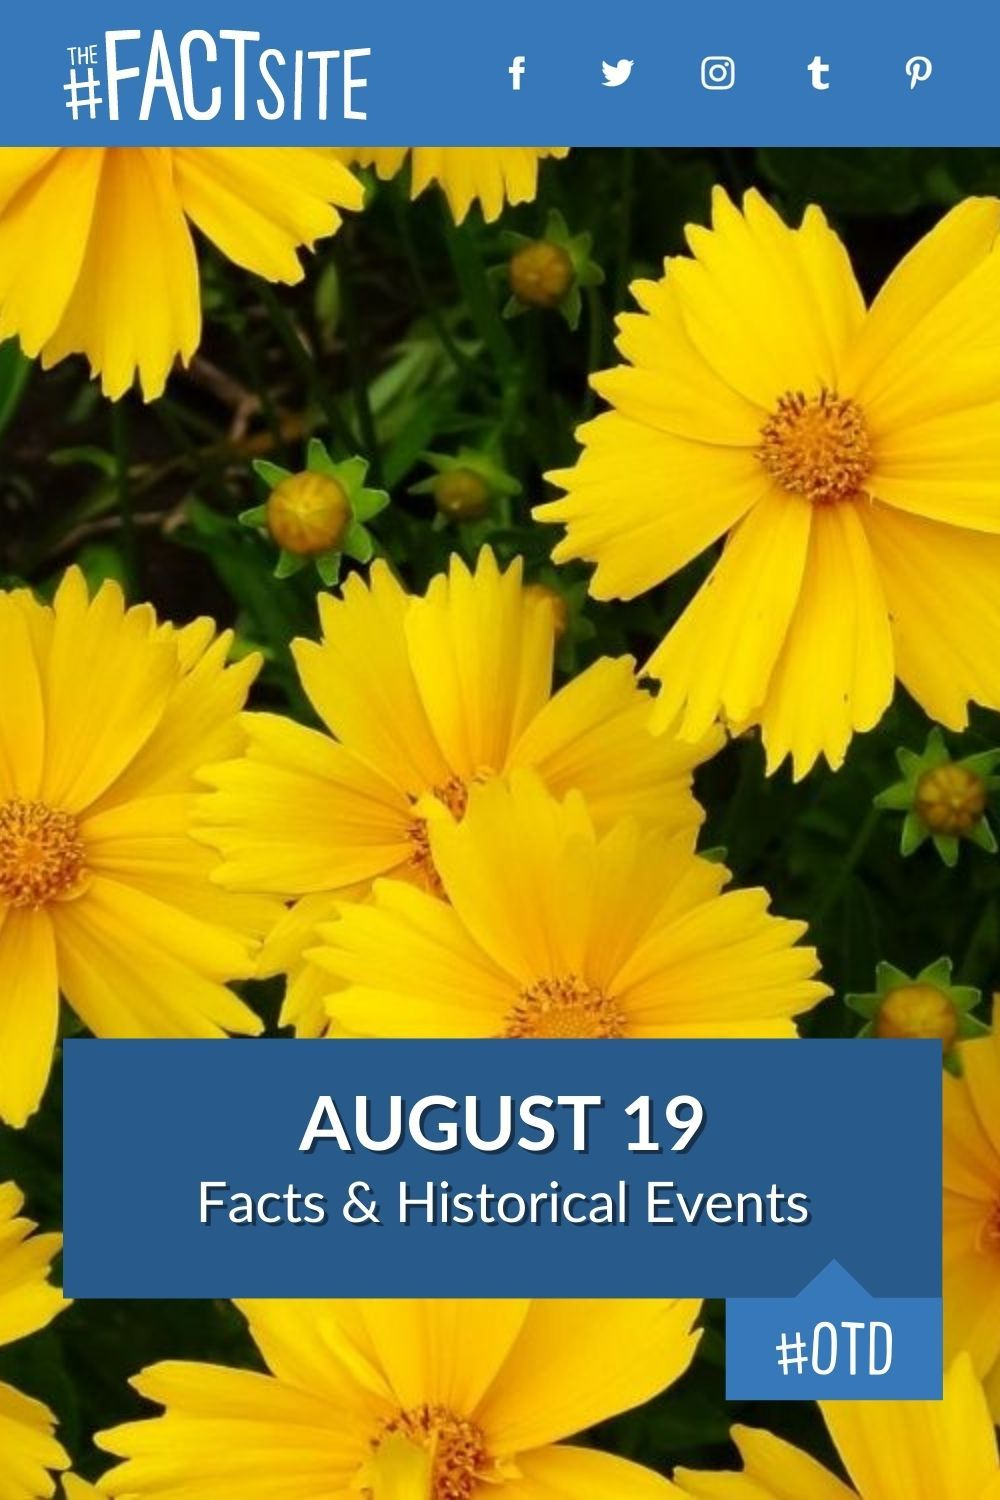 Facts & Historic Events That Happened on August 19